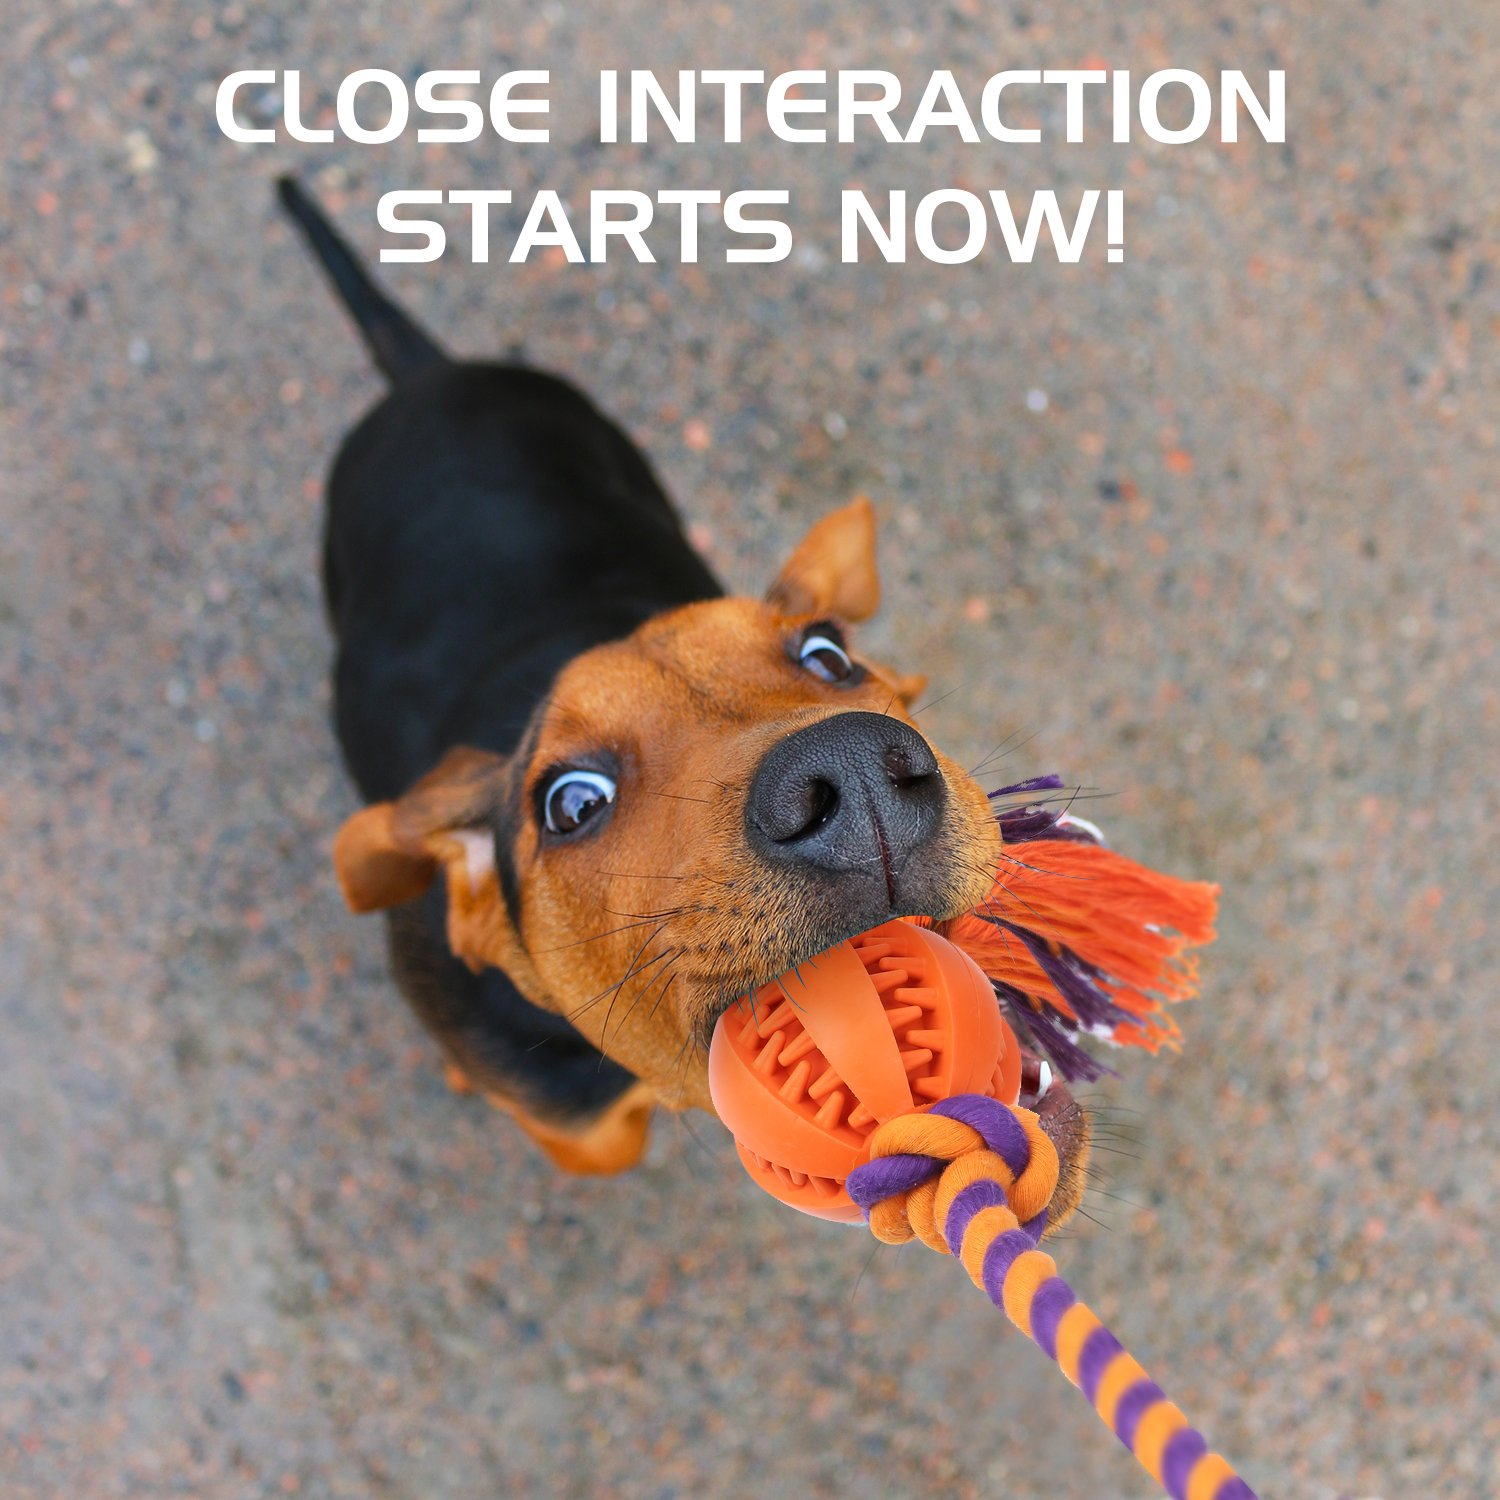 Teeth Cleaning Knotted Play Ball Toy for Small Dog Durable Non-Toxic Rubber Treat Holder Ball Chew Toy with Tough Chain Cotton Rope Orange Pawaboo Dog Ball Toy with Dental Chew Rope